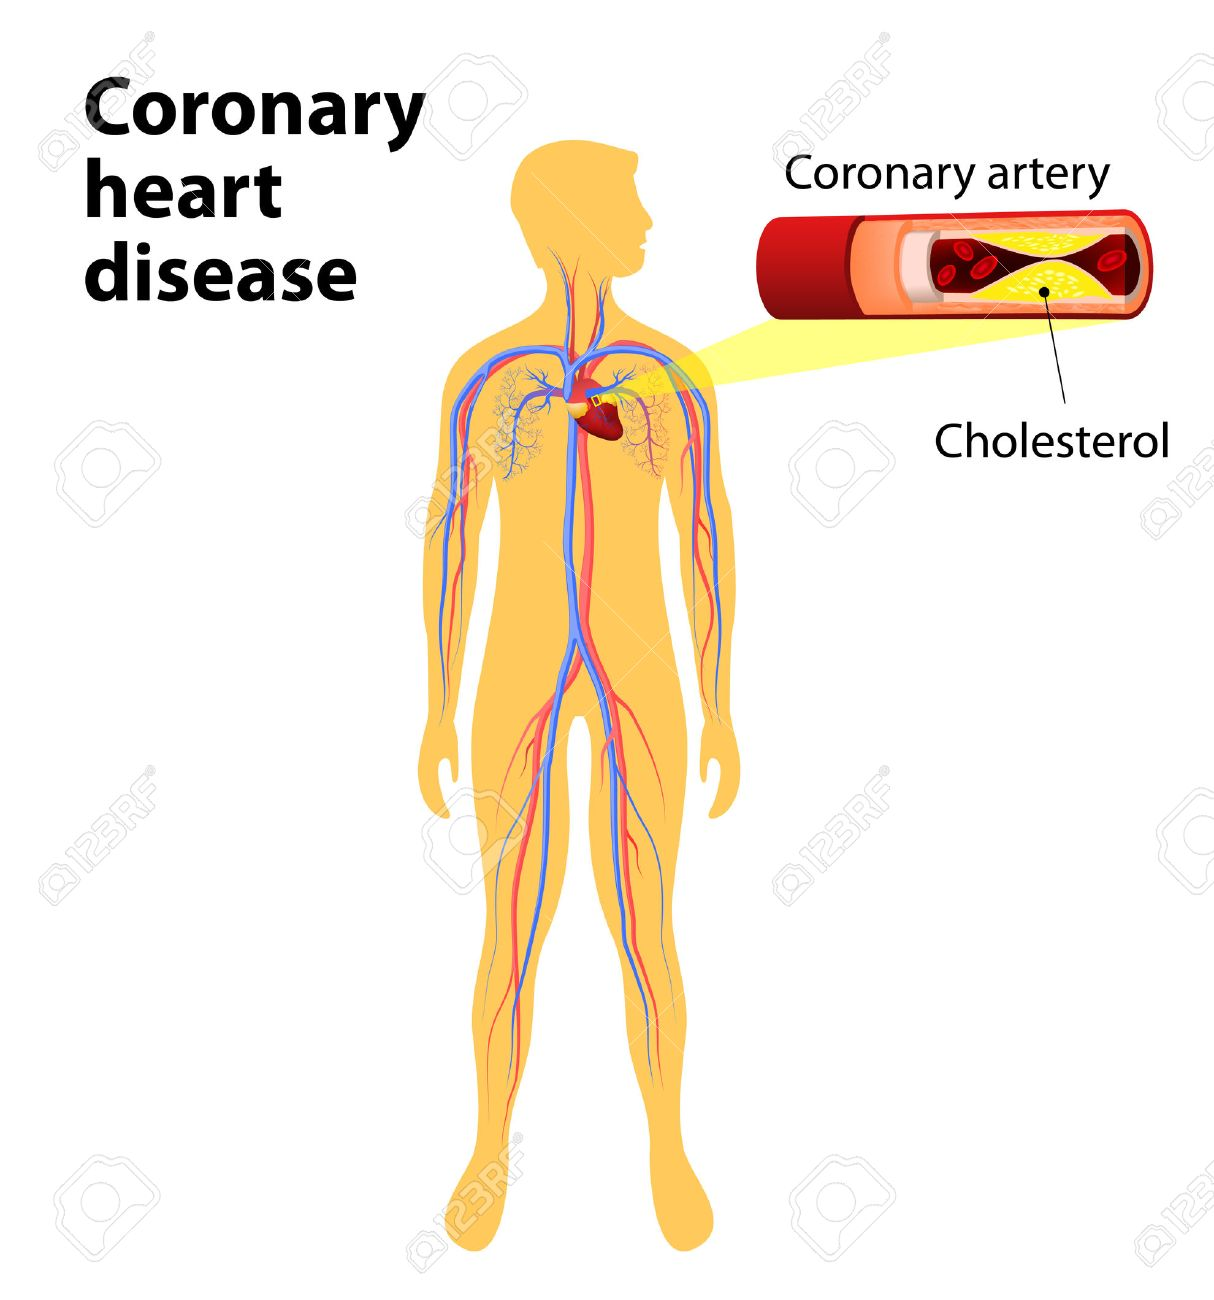 coronary heart disease is a condition in which the heart's, Cephalic Vein